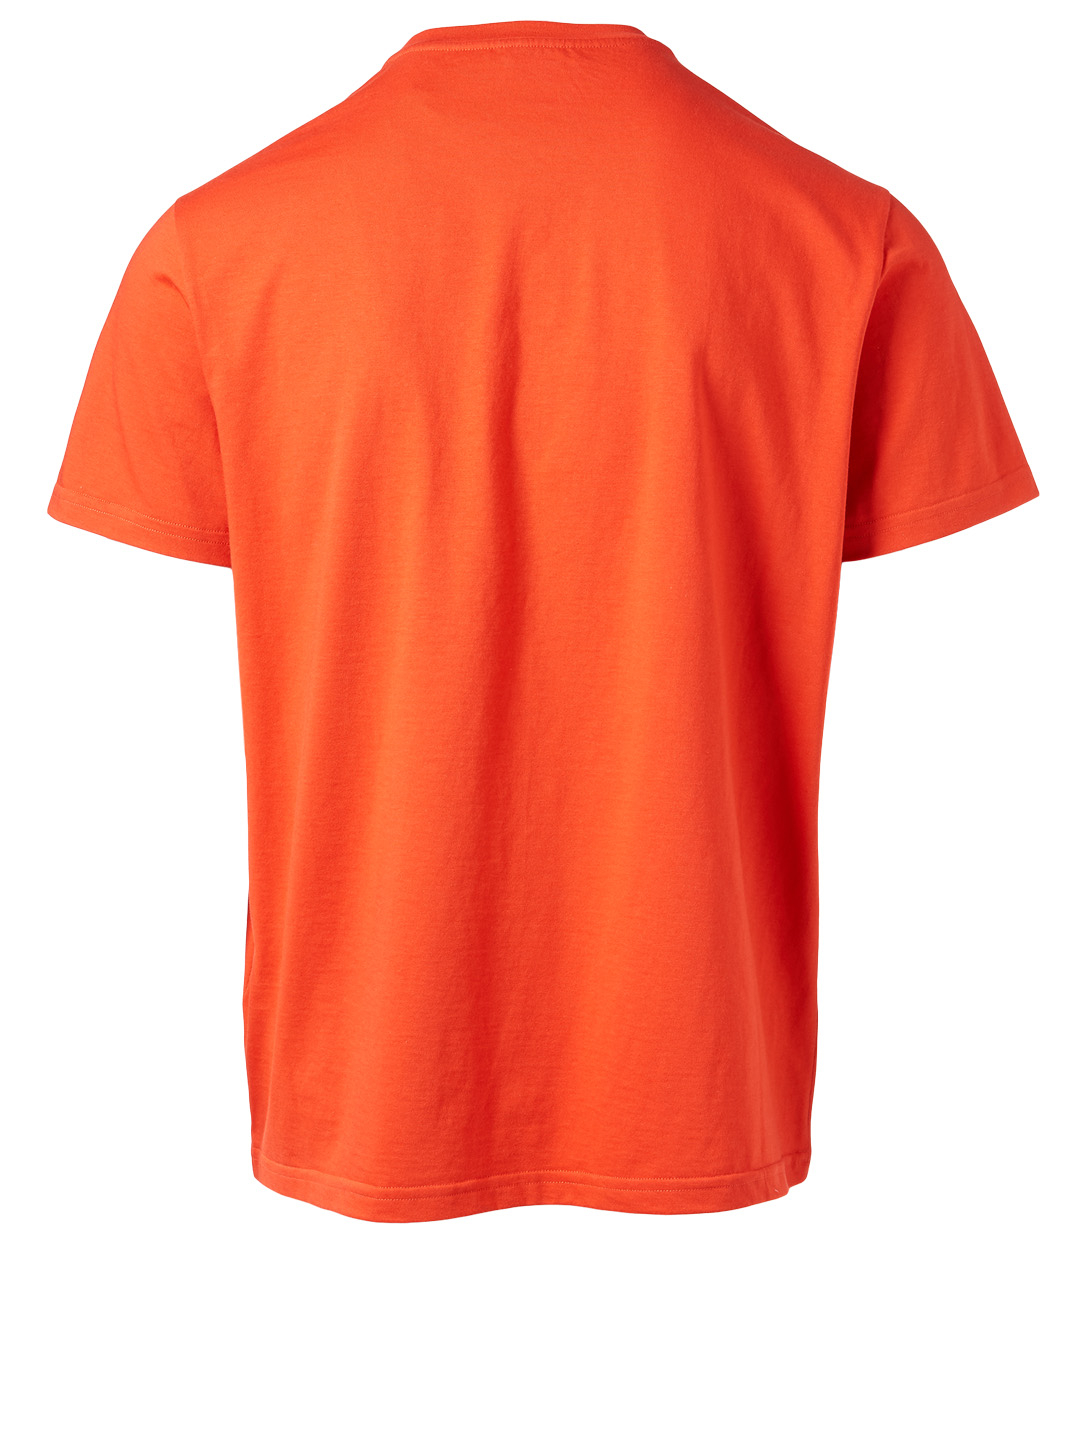 MONCLER GENIUS 5 Moncler x Craig Green Logo T-Shirt Men's Orange